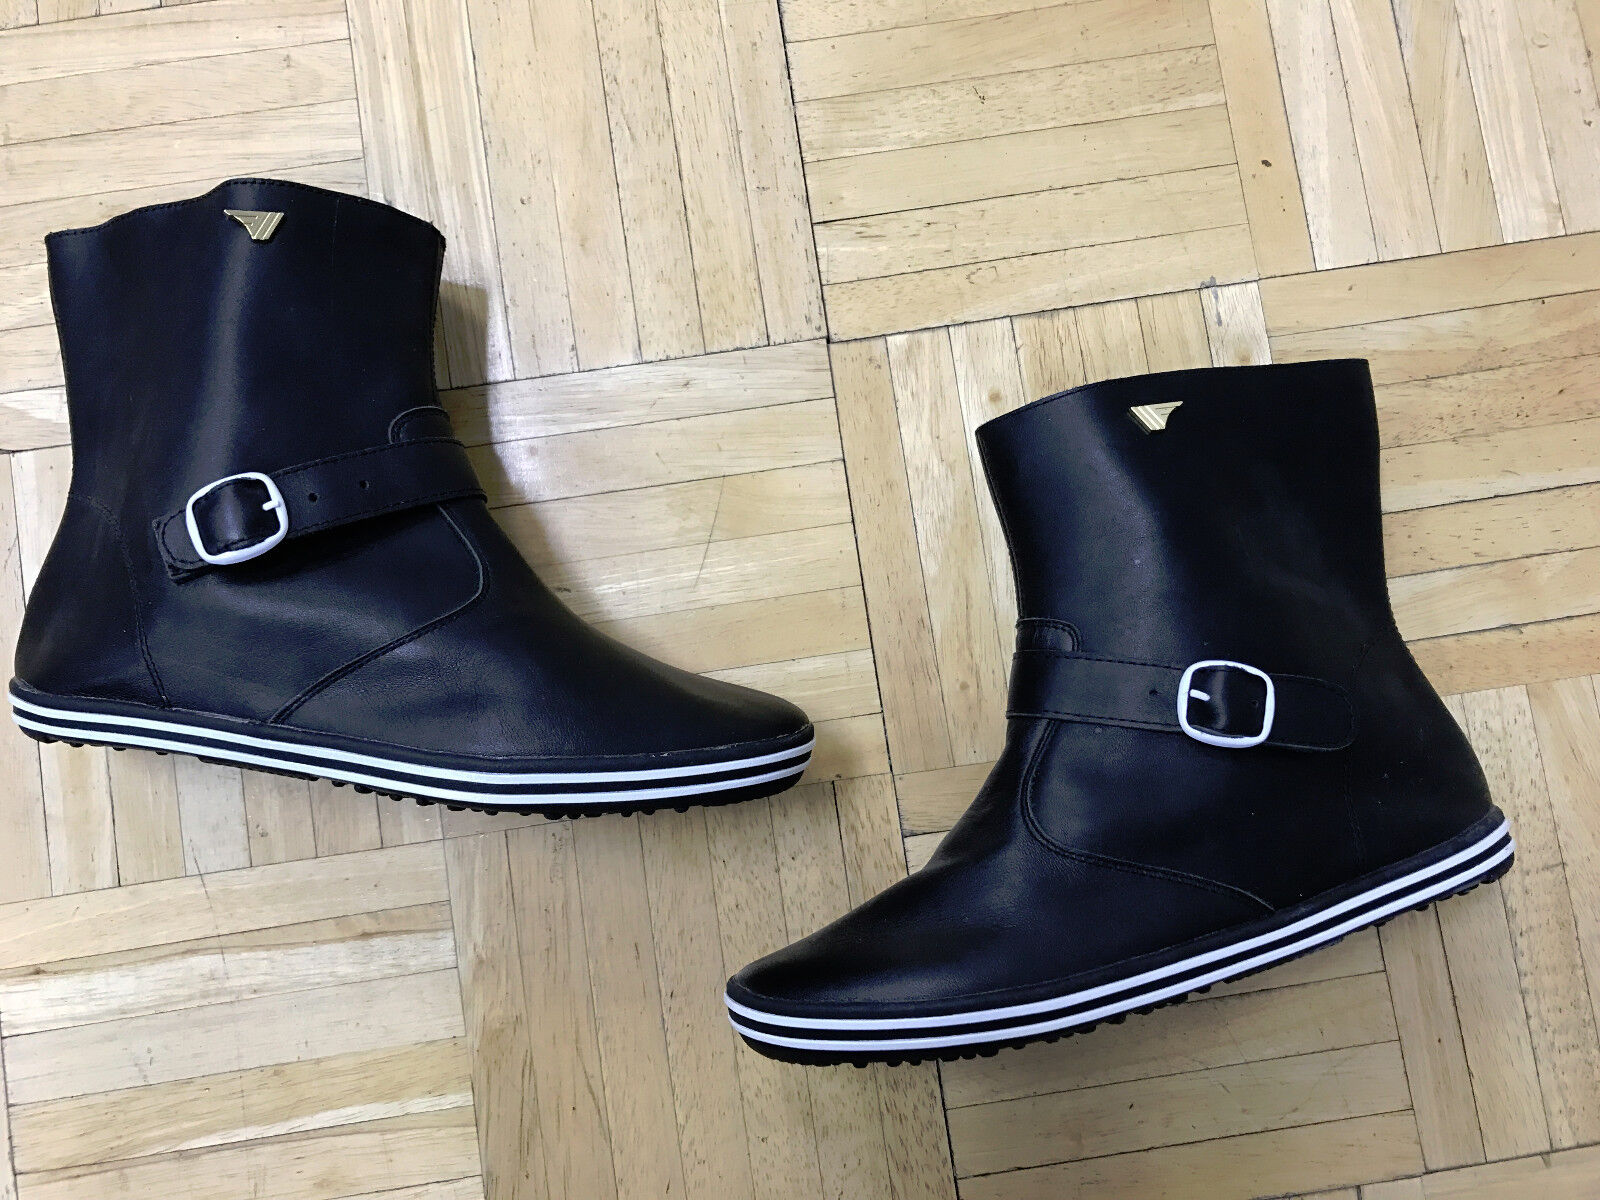 ***NEW*** Gola Spring women's boots Lite Weight. Leather.